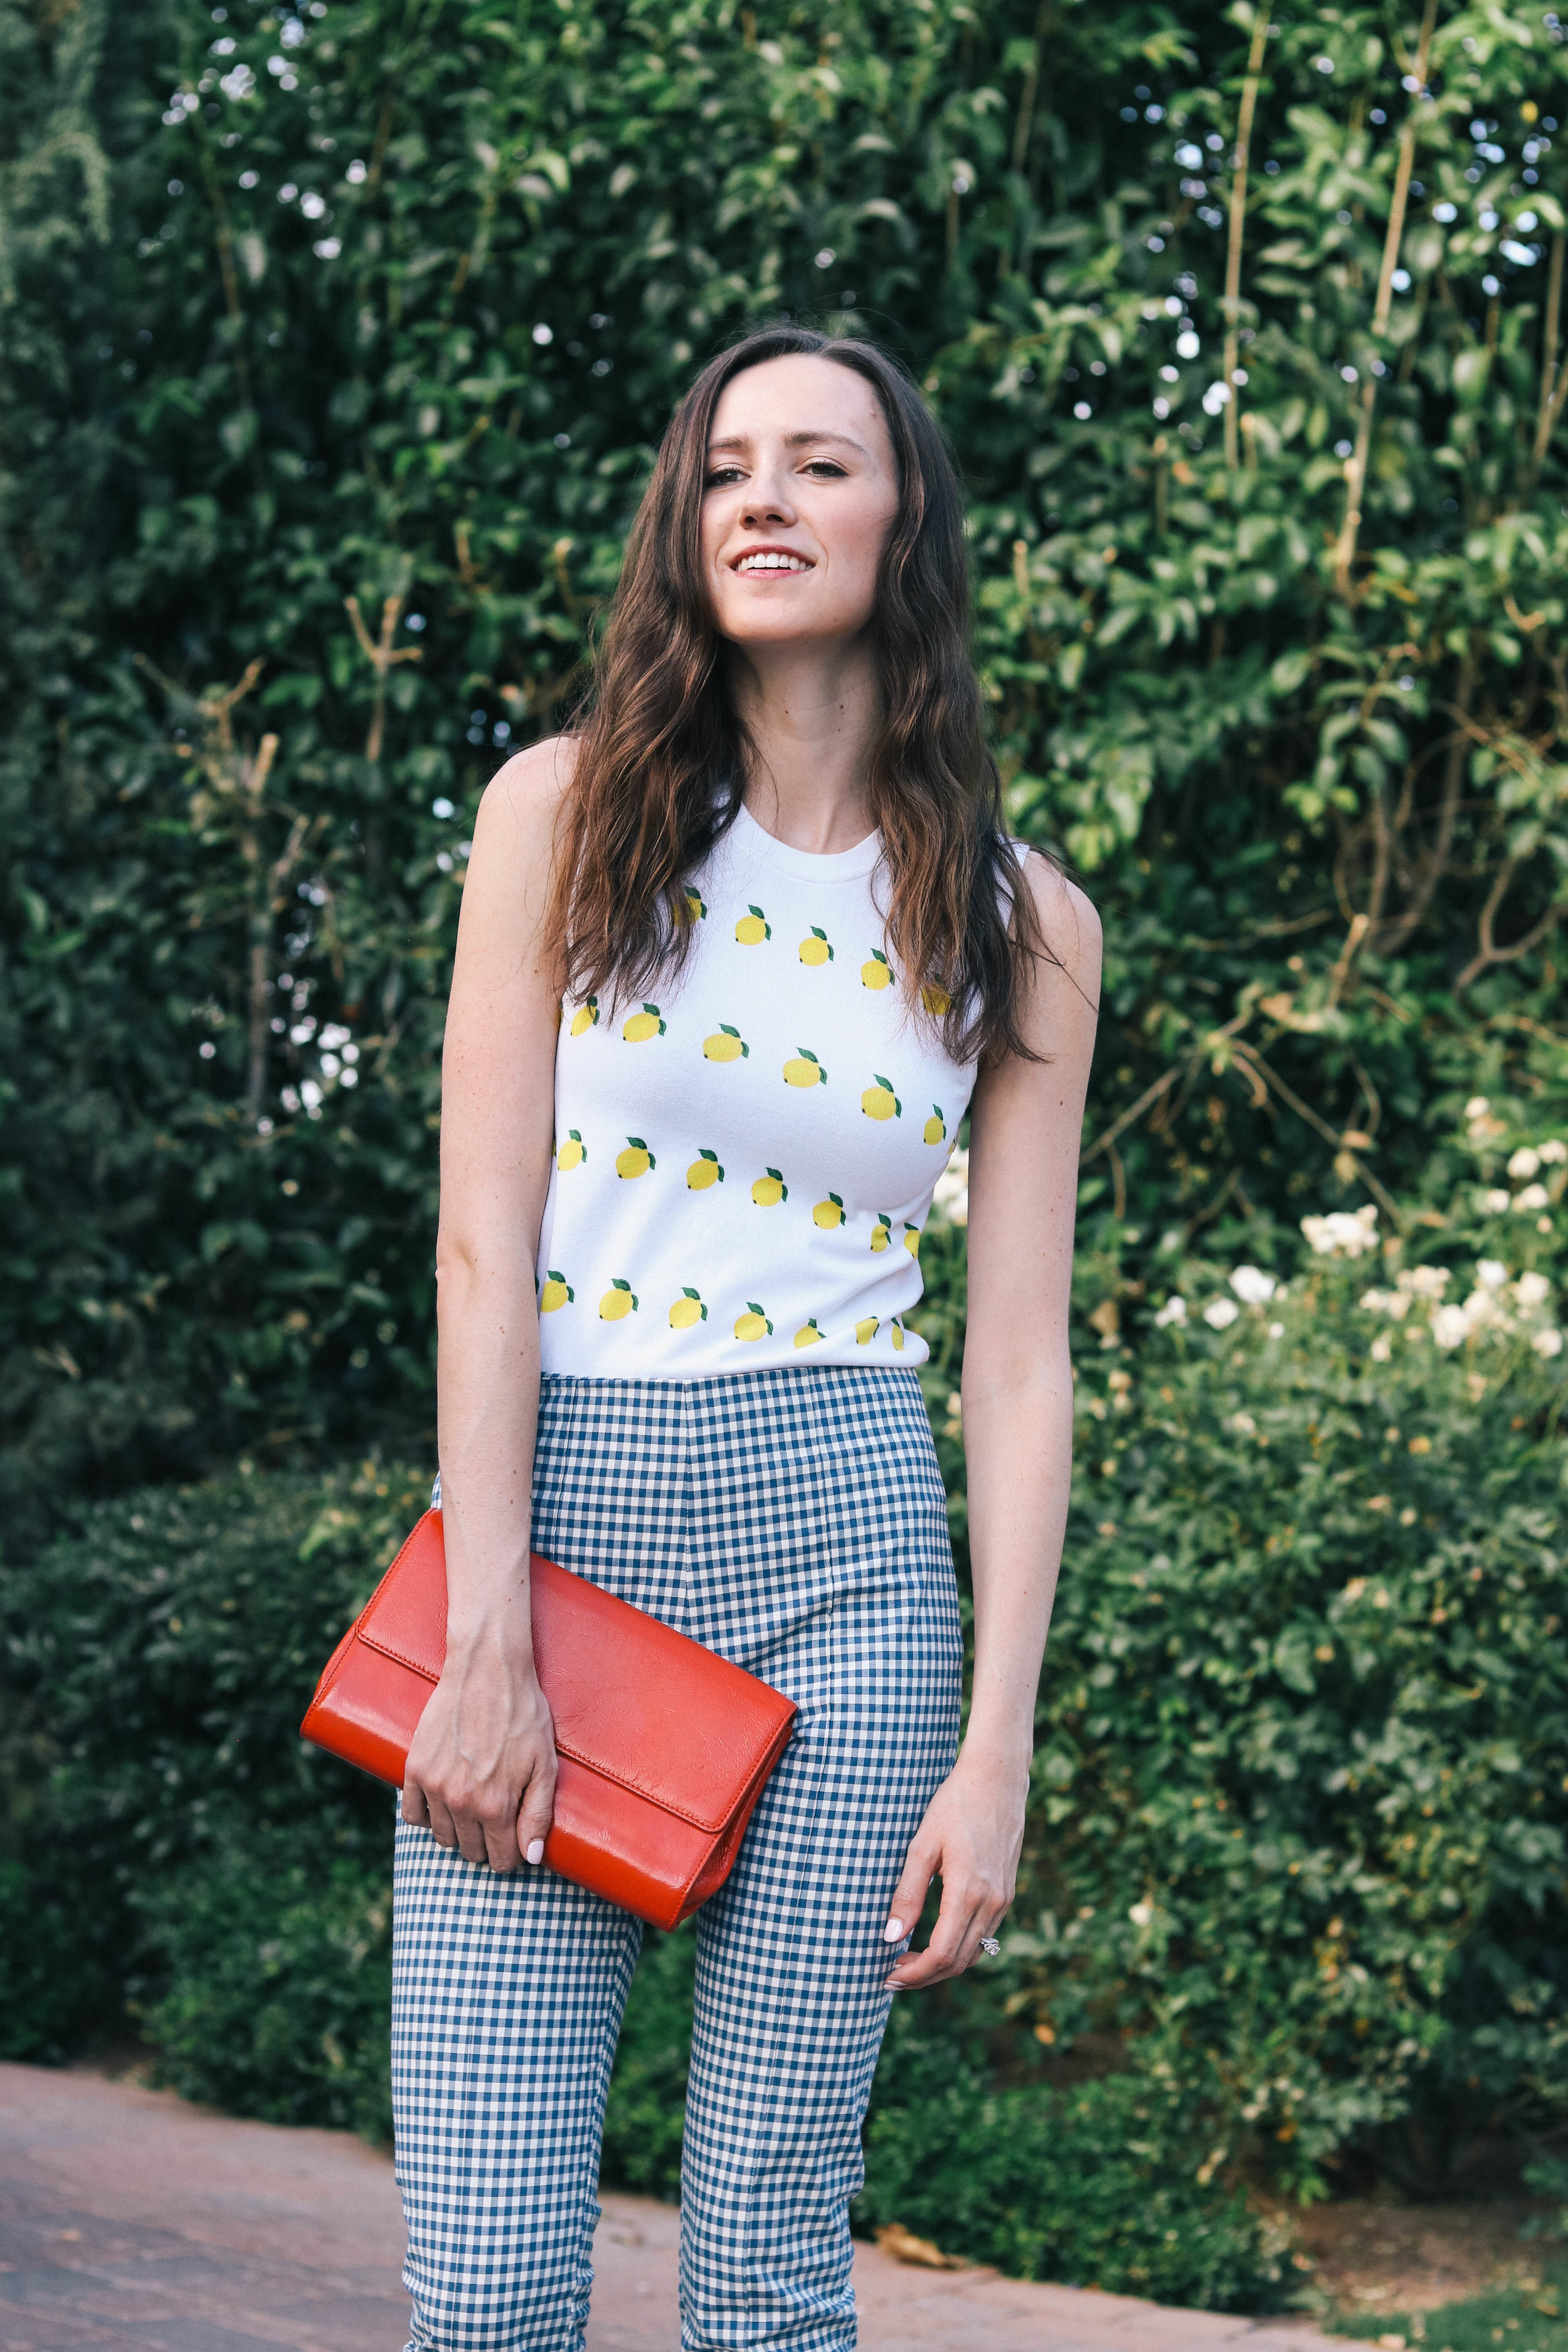 bb-summer-outfit-009 (1 of 1).jpg